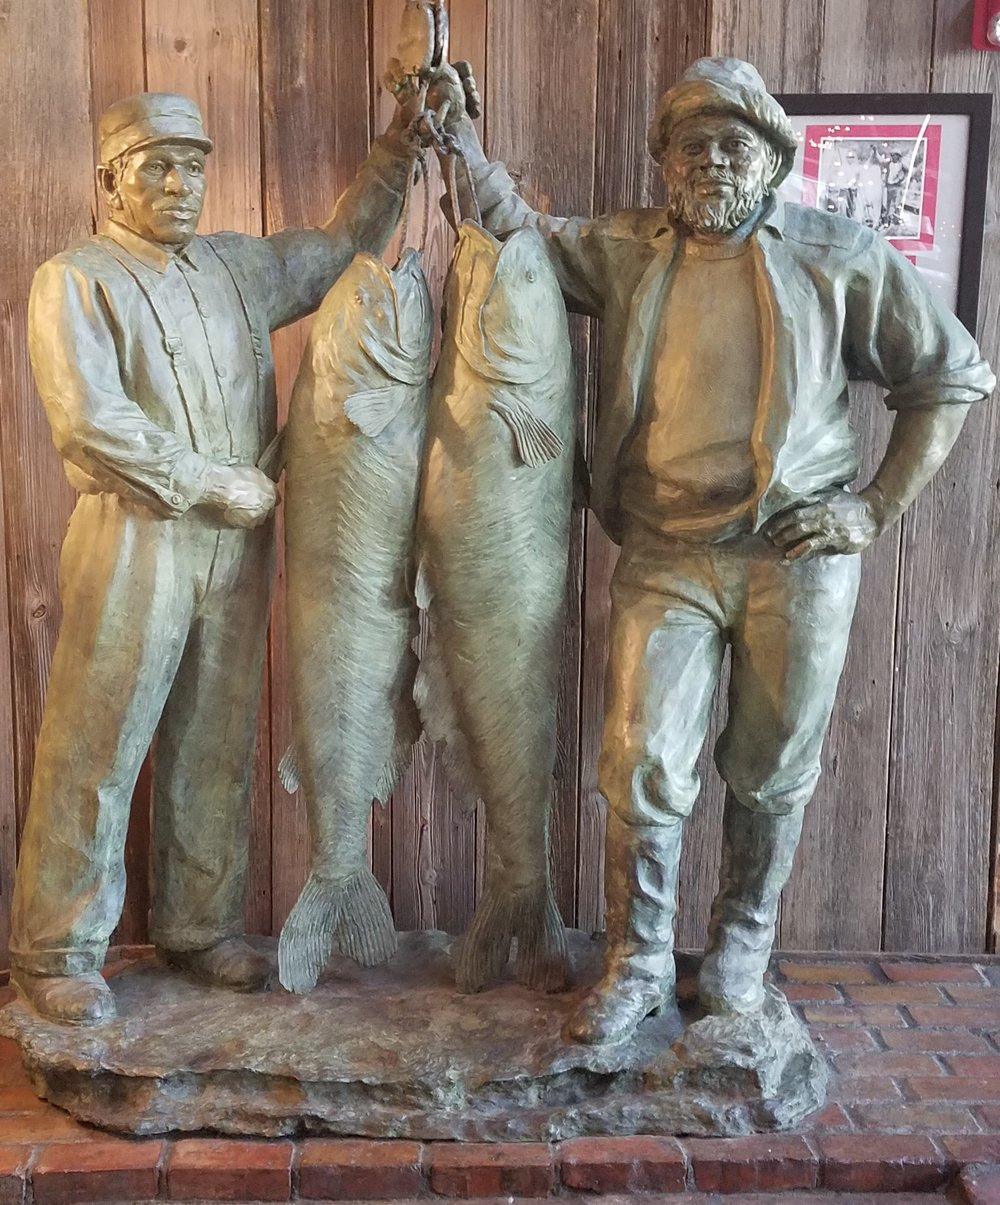 Abe Burns &Jake Washington - 92lb and 110lb Blue Catfish Bronze Sculpture Located inside Abe & Jake's Landing.